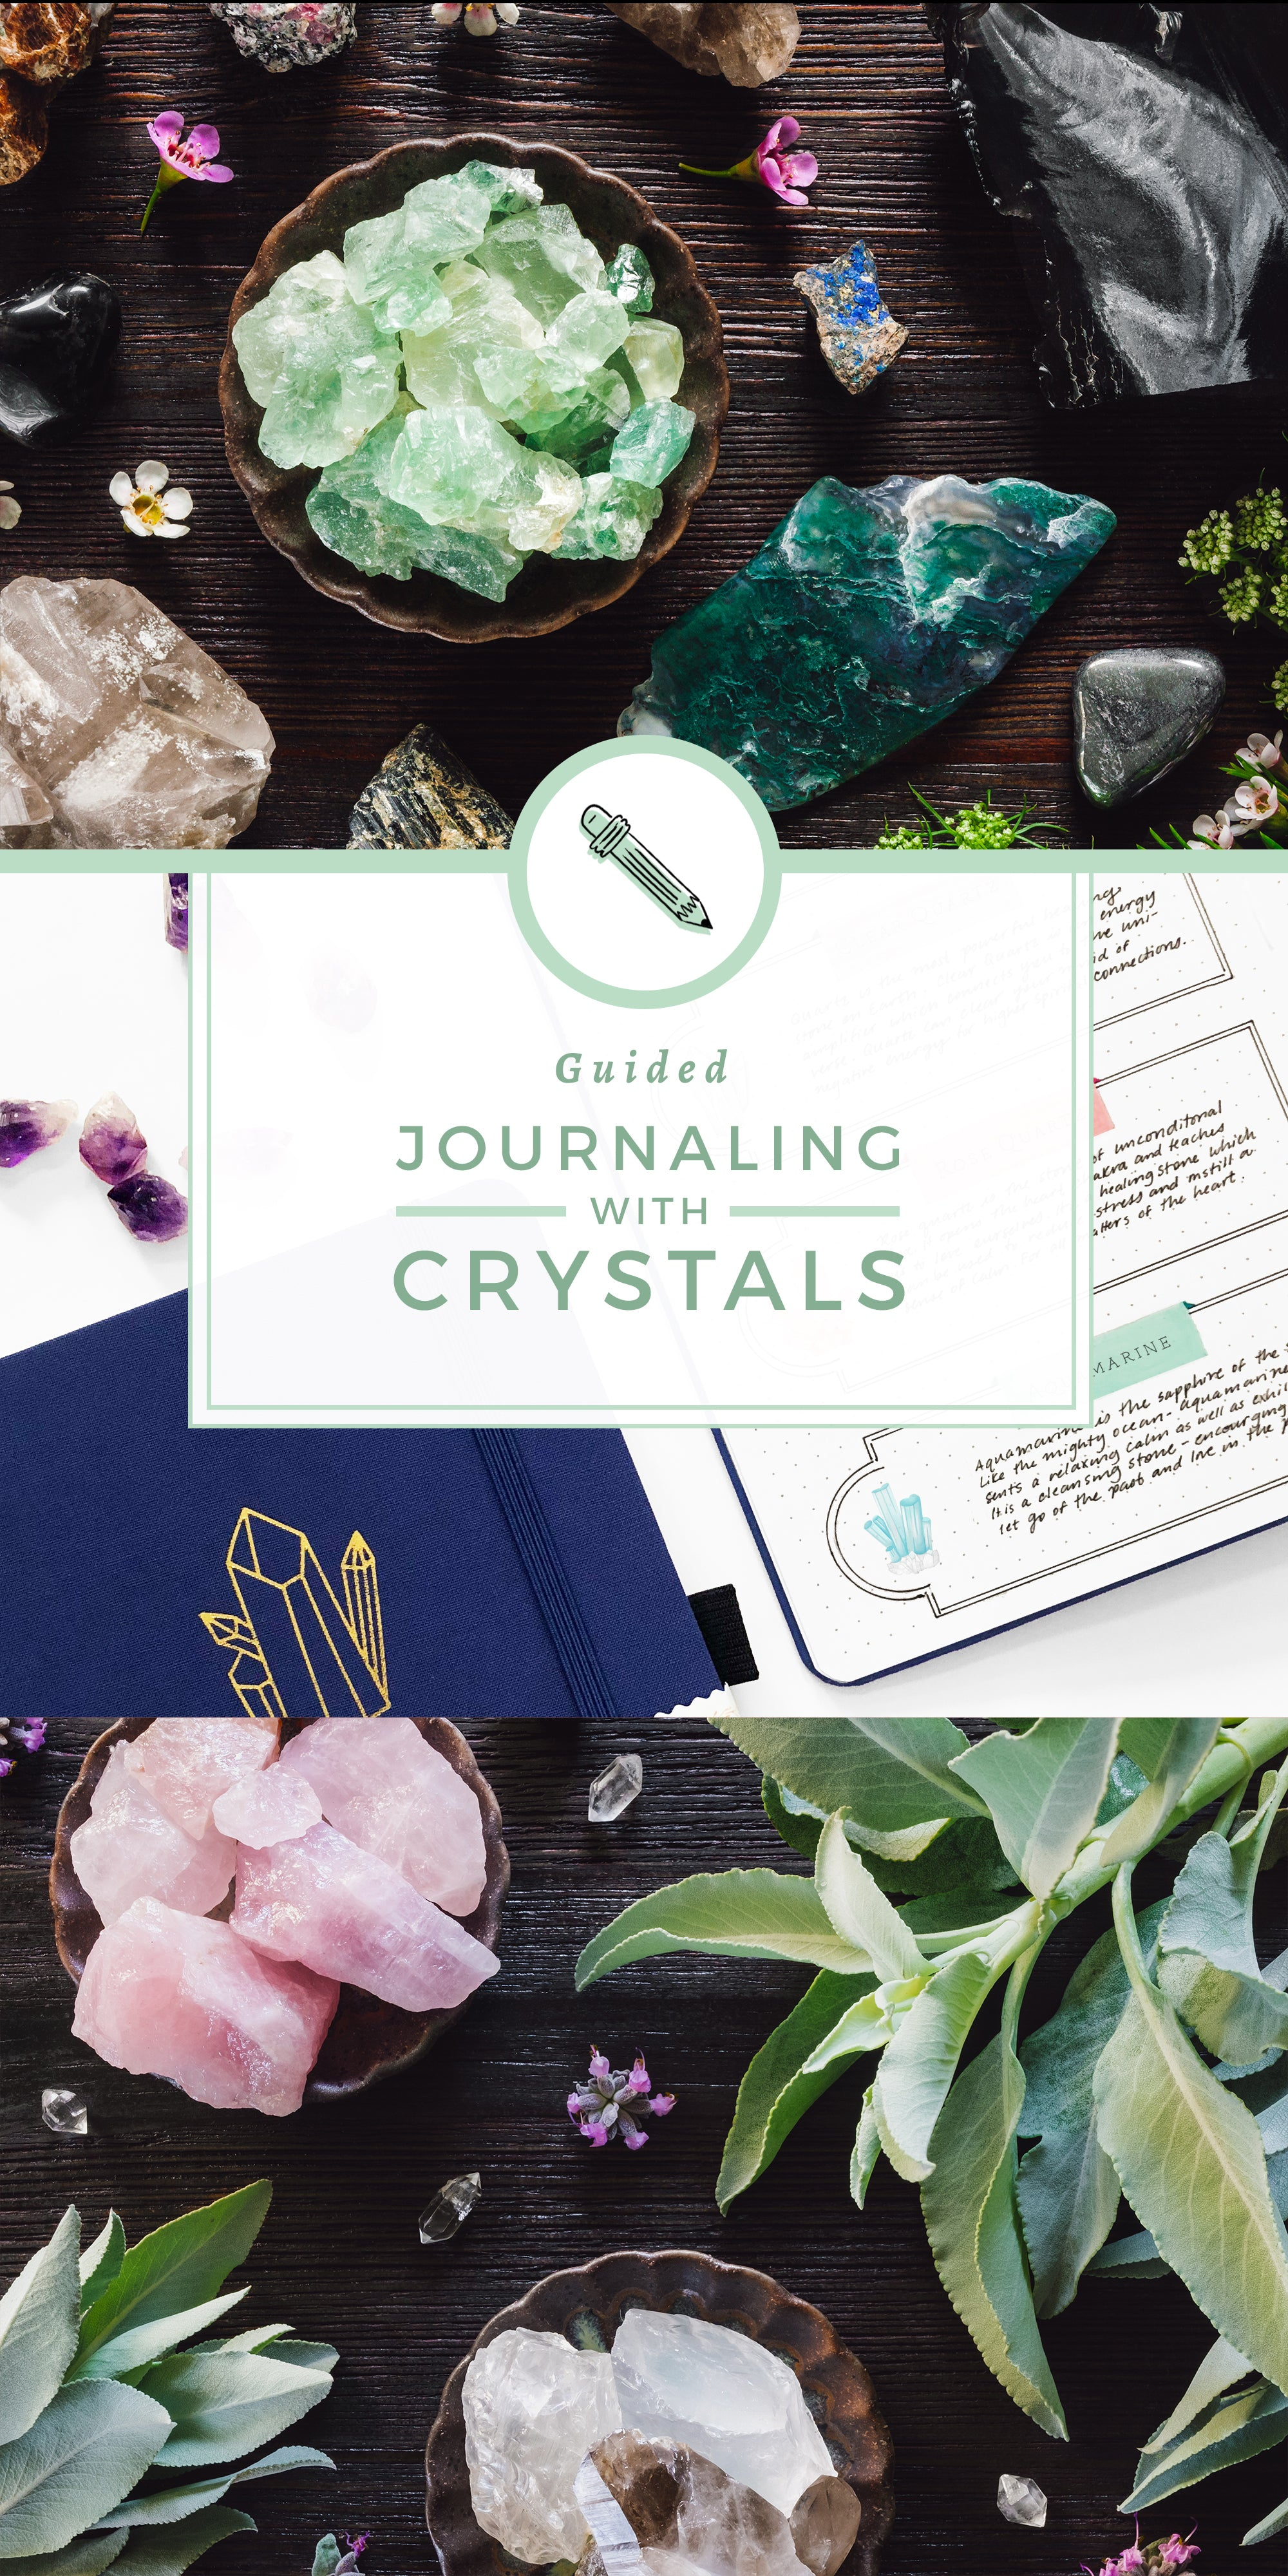 Guided Journaling With Crystals